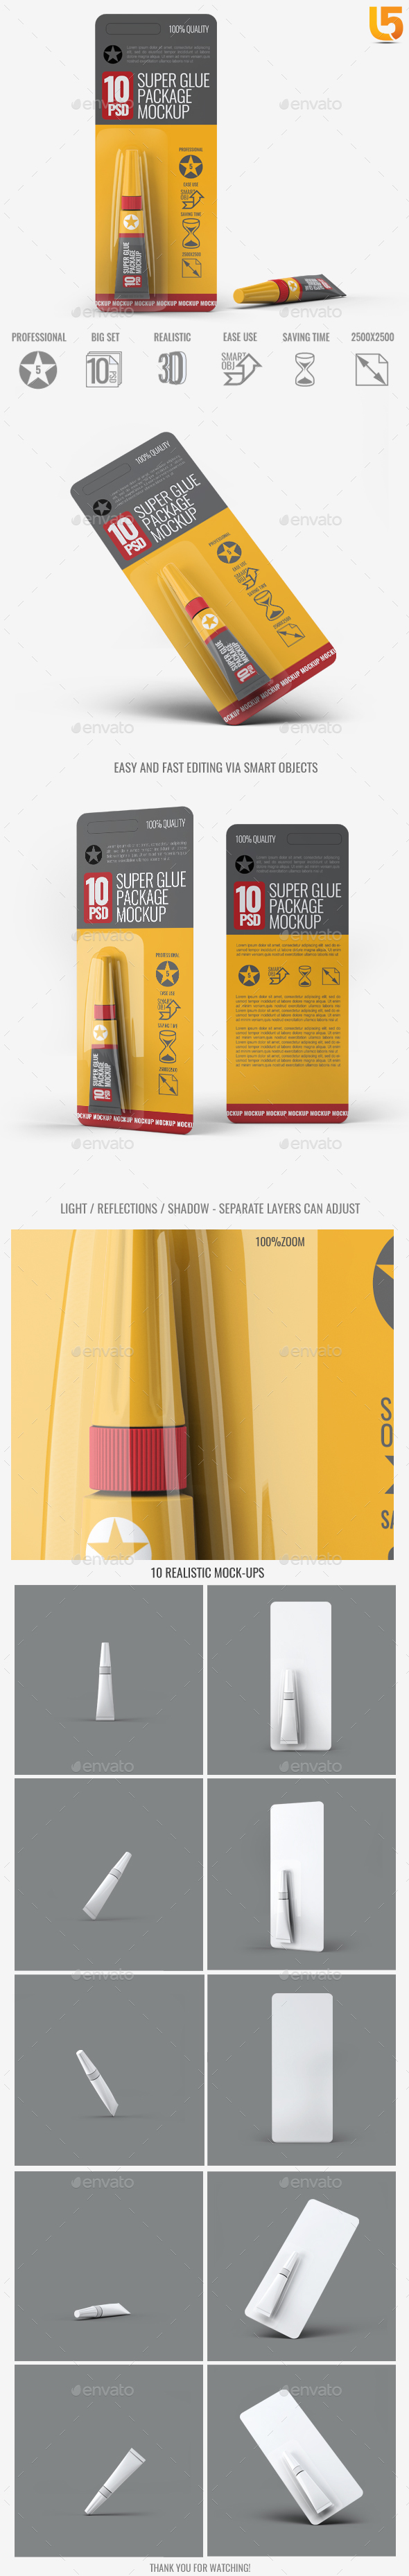 Super Glue Packaging Mock-Up - Miscellaneous Packaging